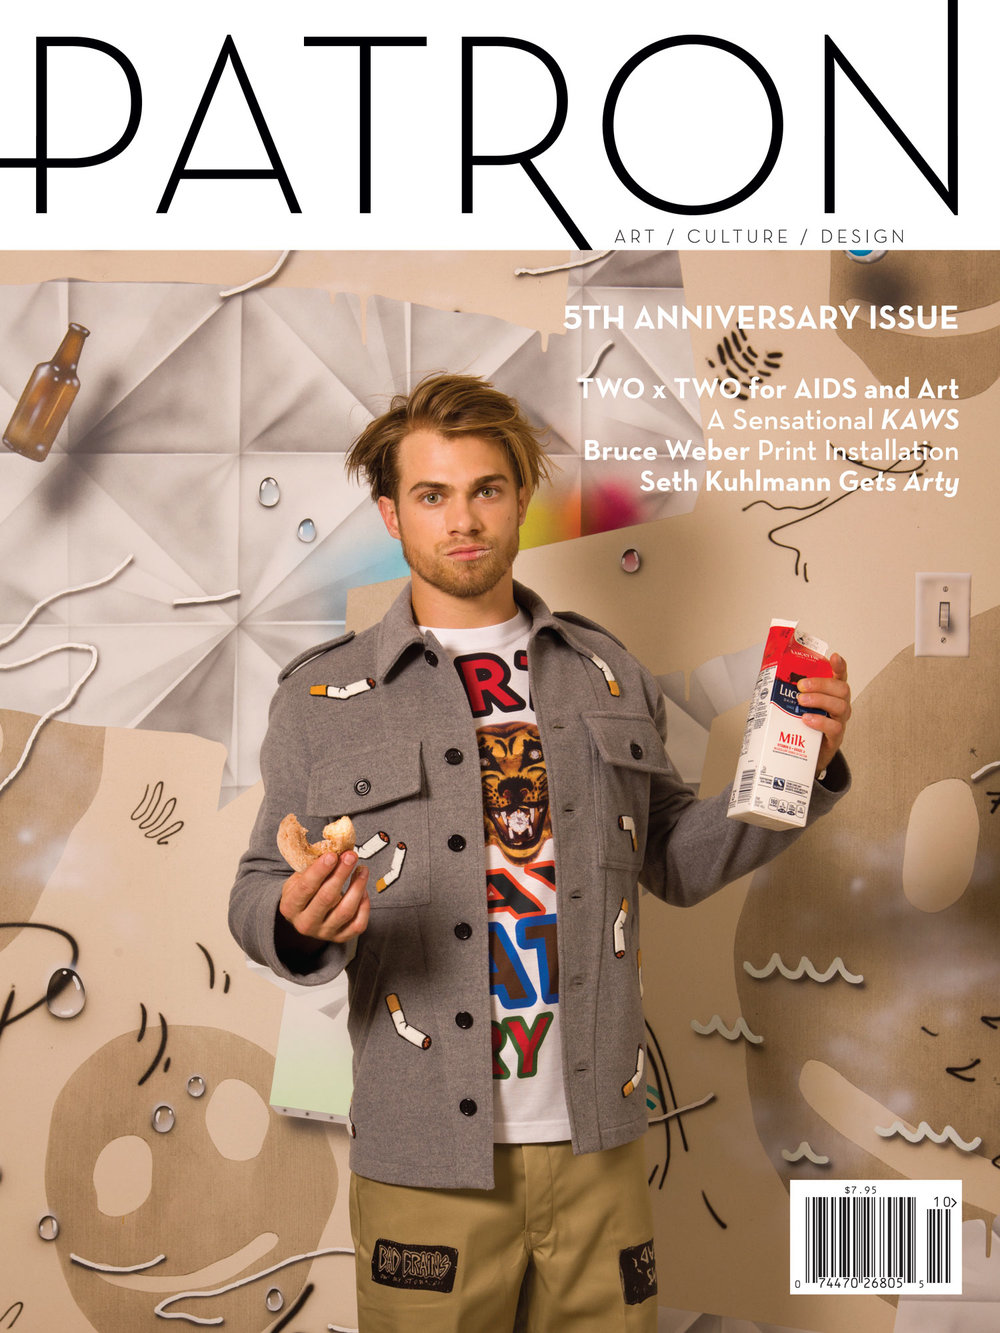 PATRON Magazine - Vol. 6. CLICK HERE FOR THE FULL FEATURE